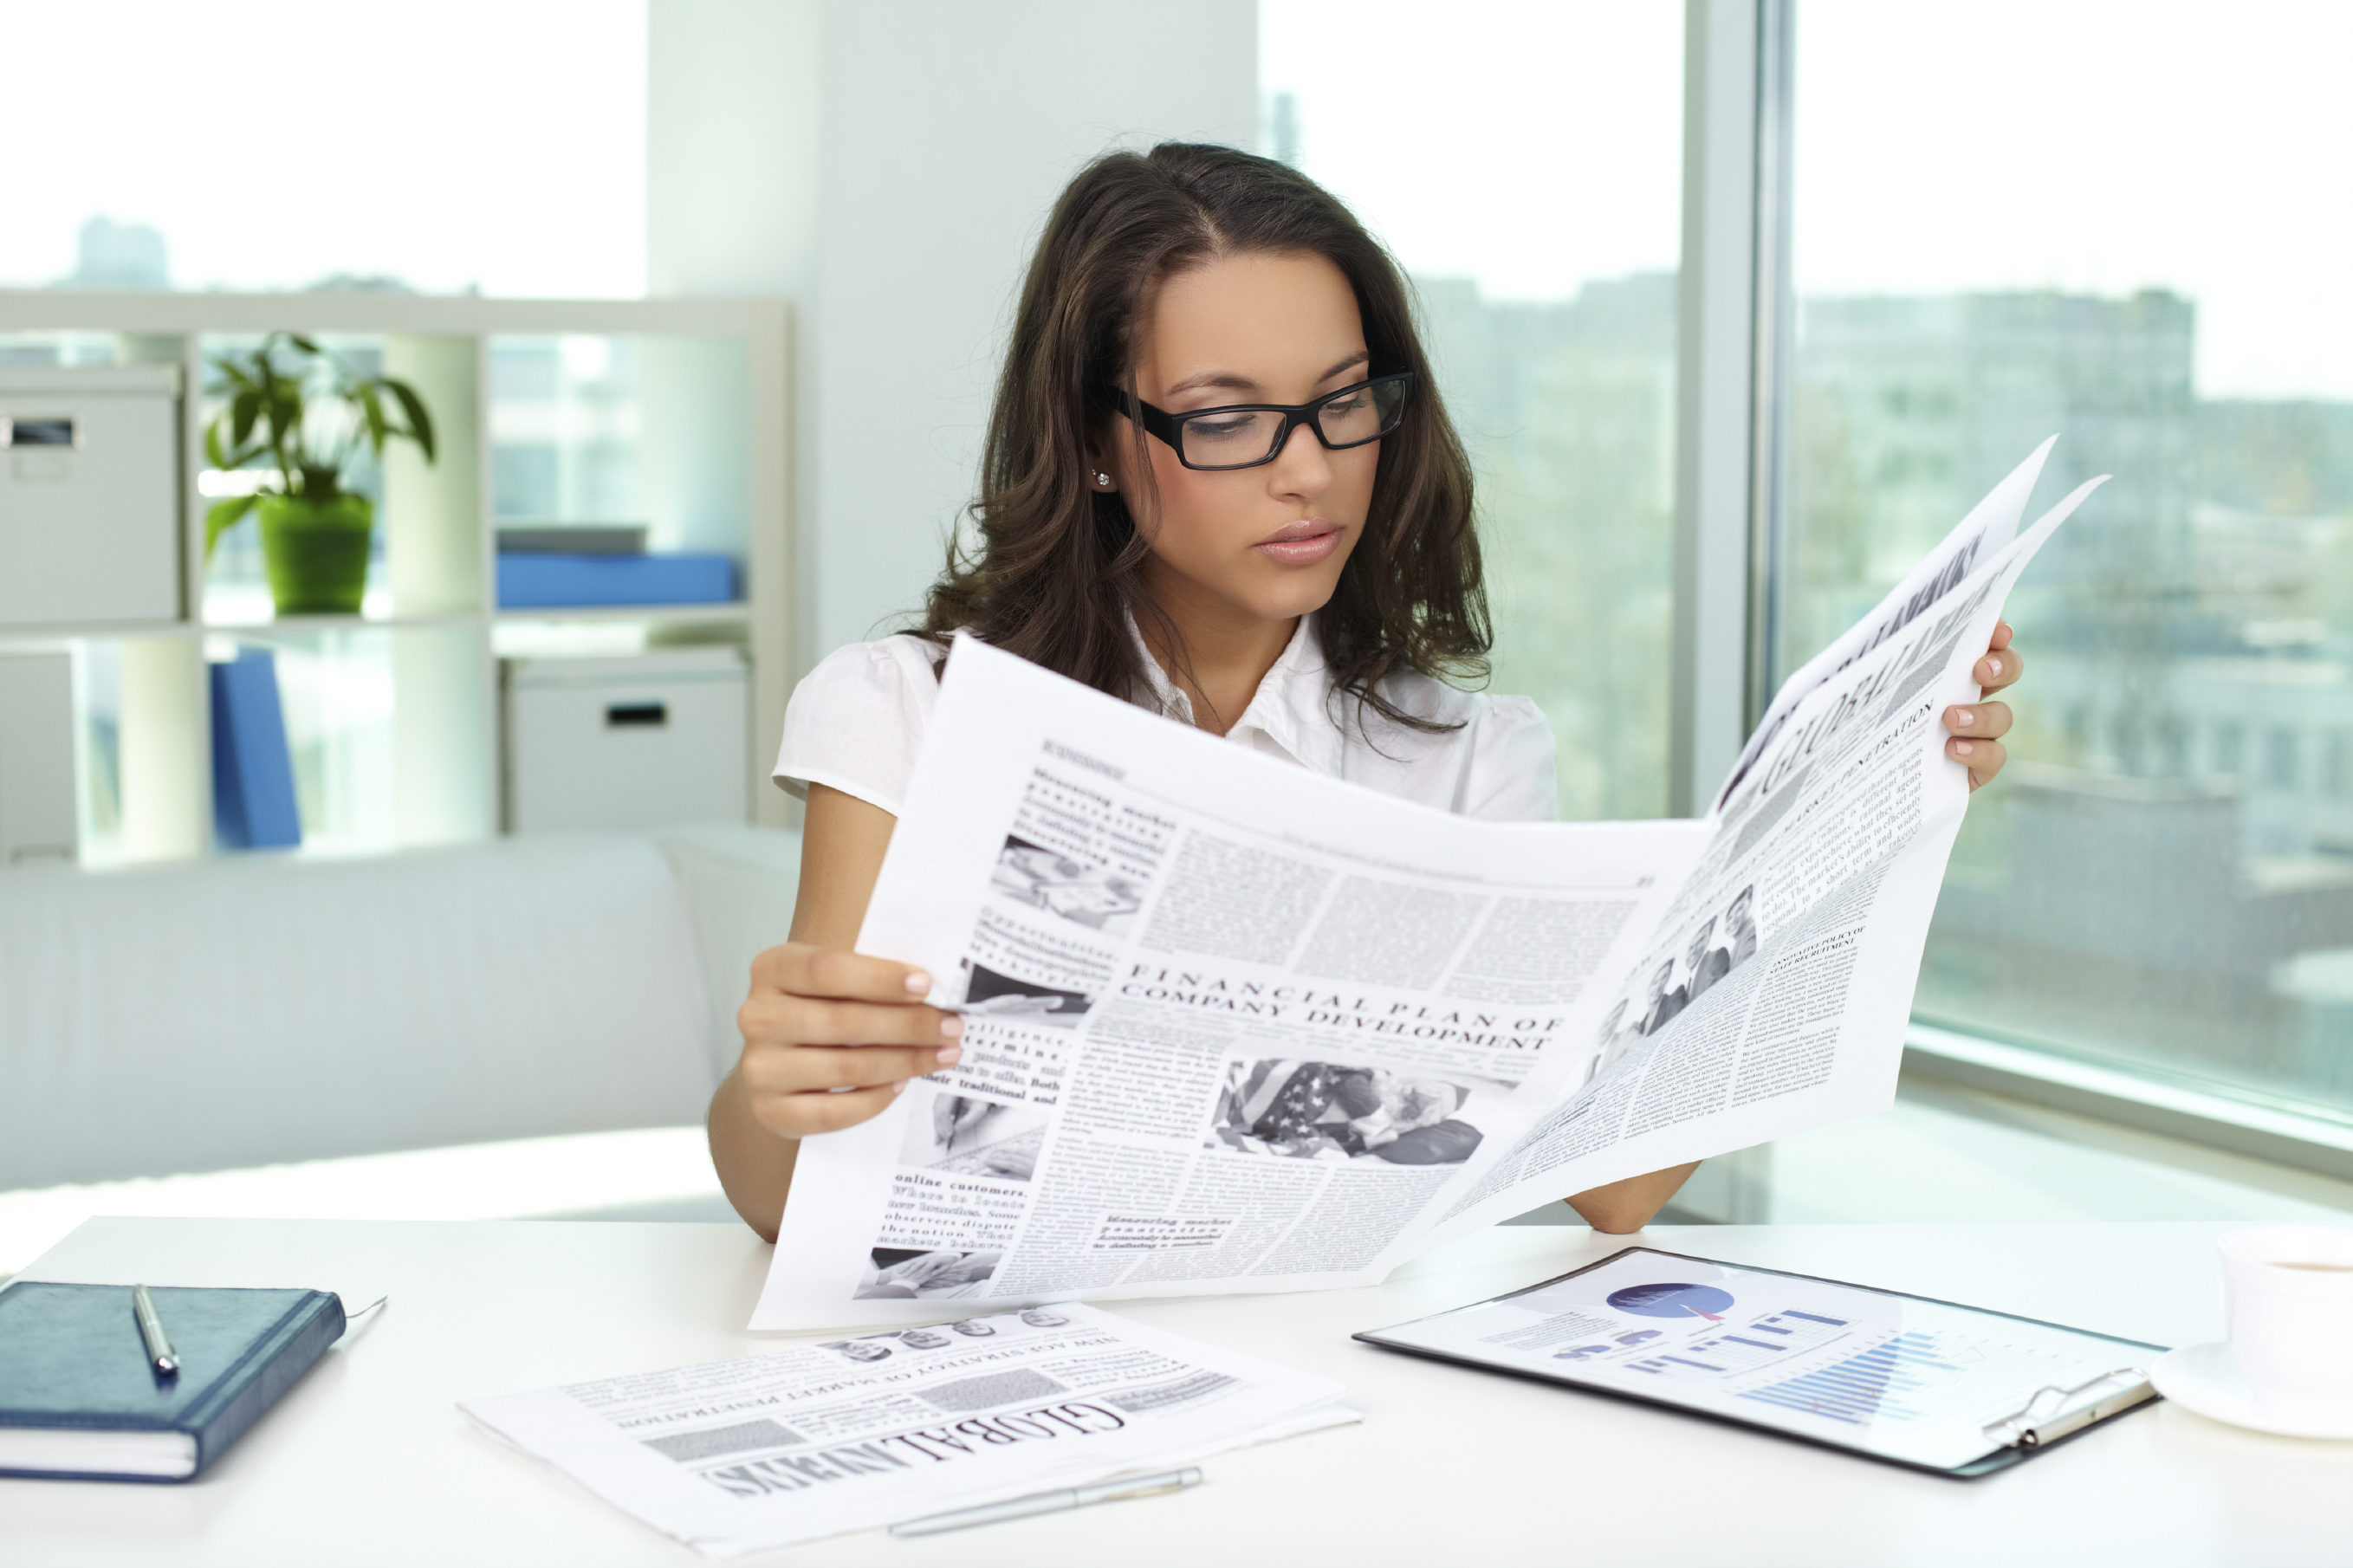 woman reading news